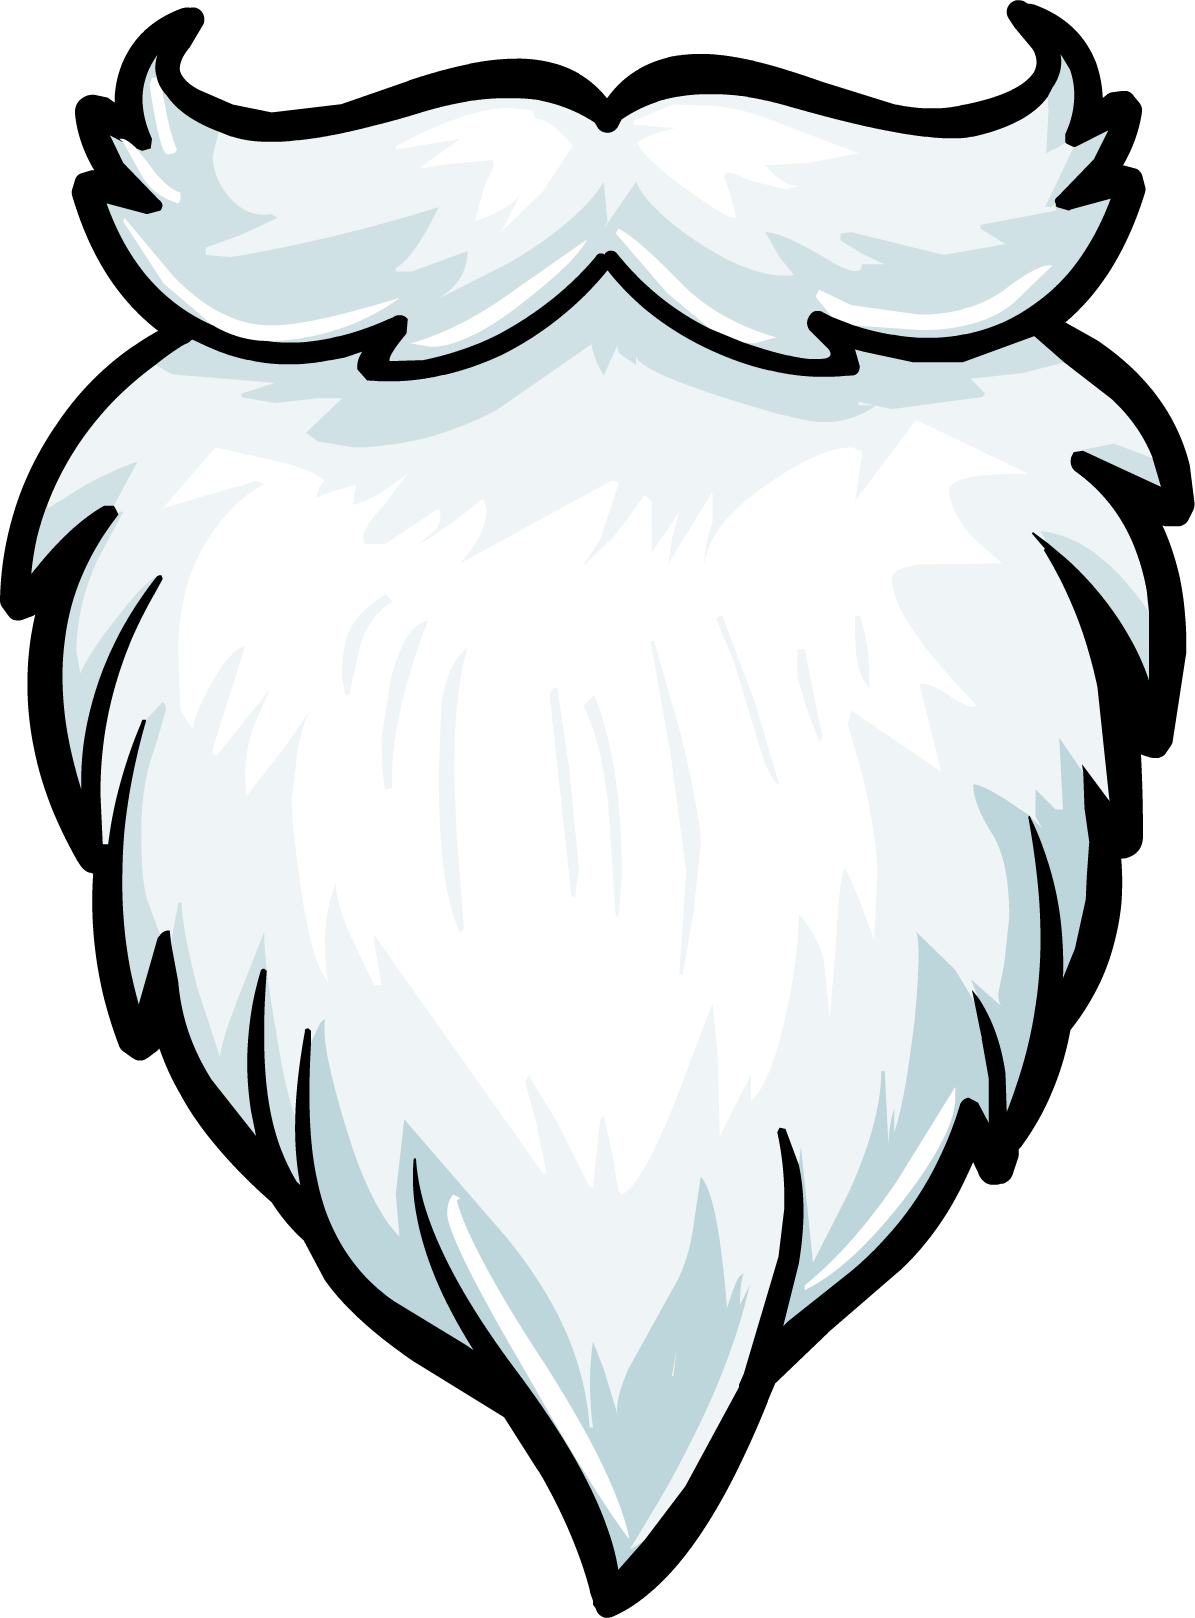 Santa beard png. Image white fuzzy club